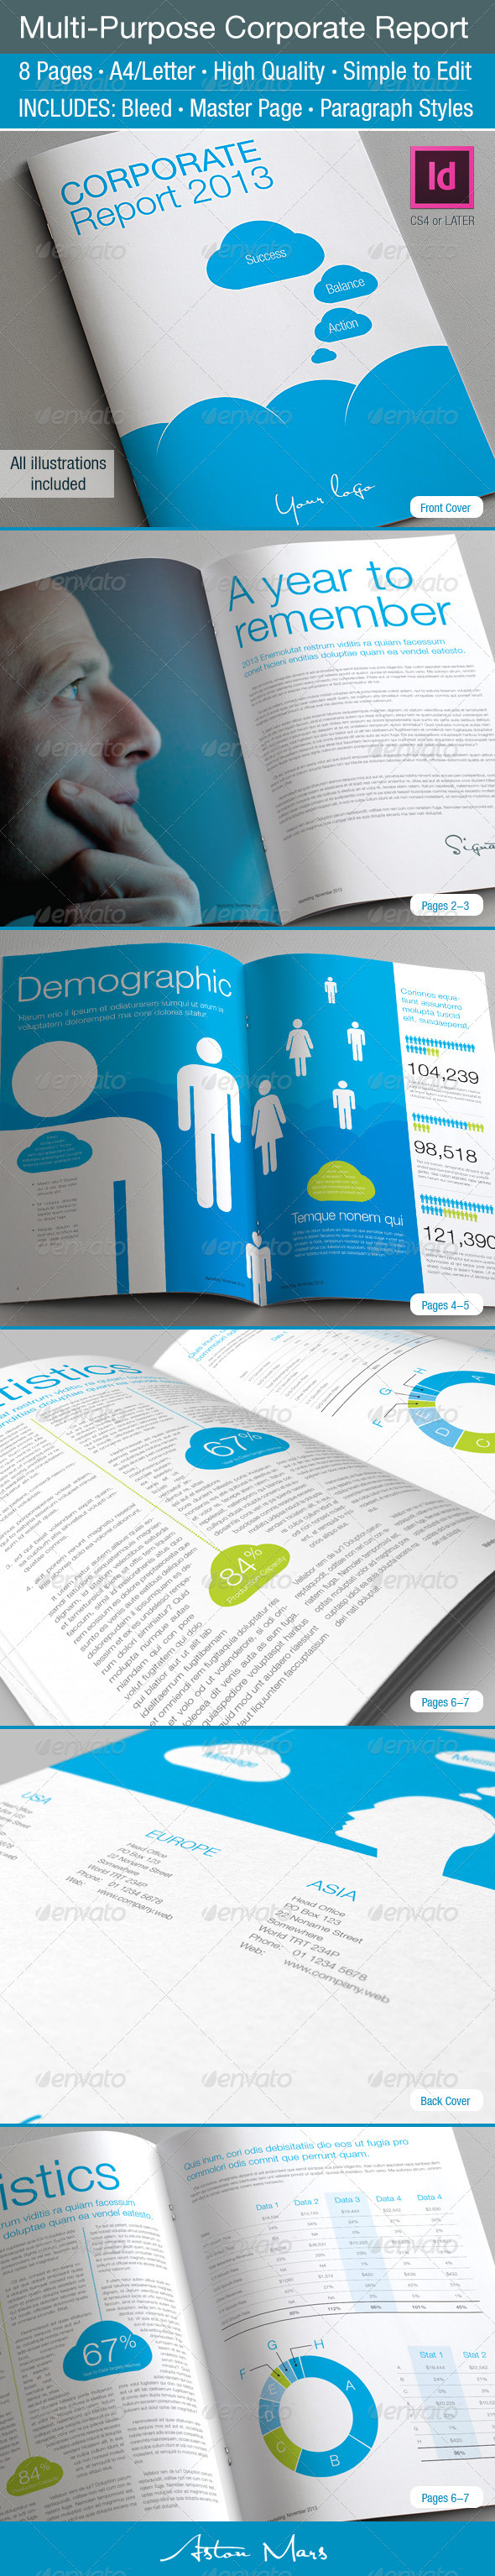 GraphicRiver Multi-Purpose Corporate Report 3760200